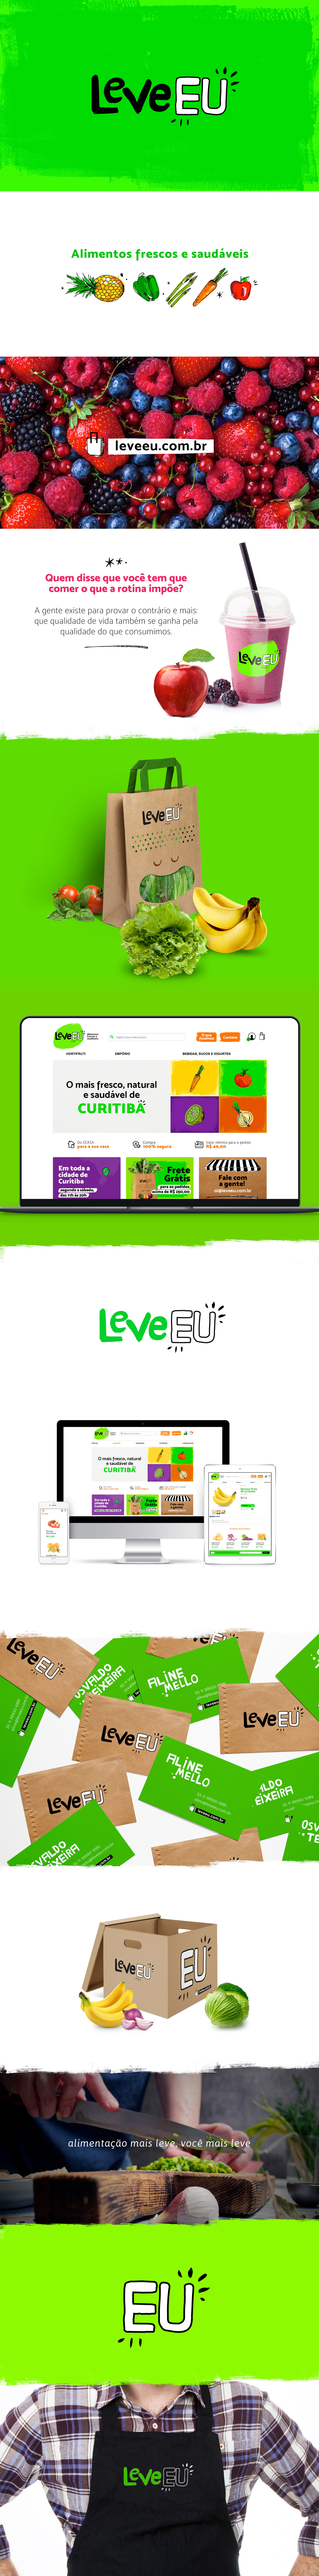 fresh green market vegetable identity branding visual IDENTITY GRAPHIC DESIGN healthy Food natural Interface